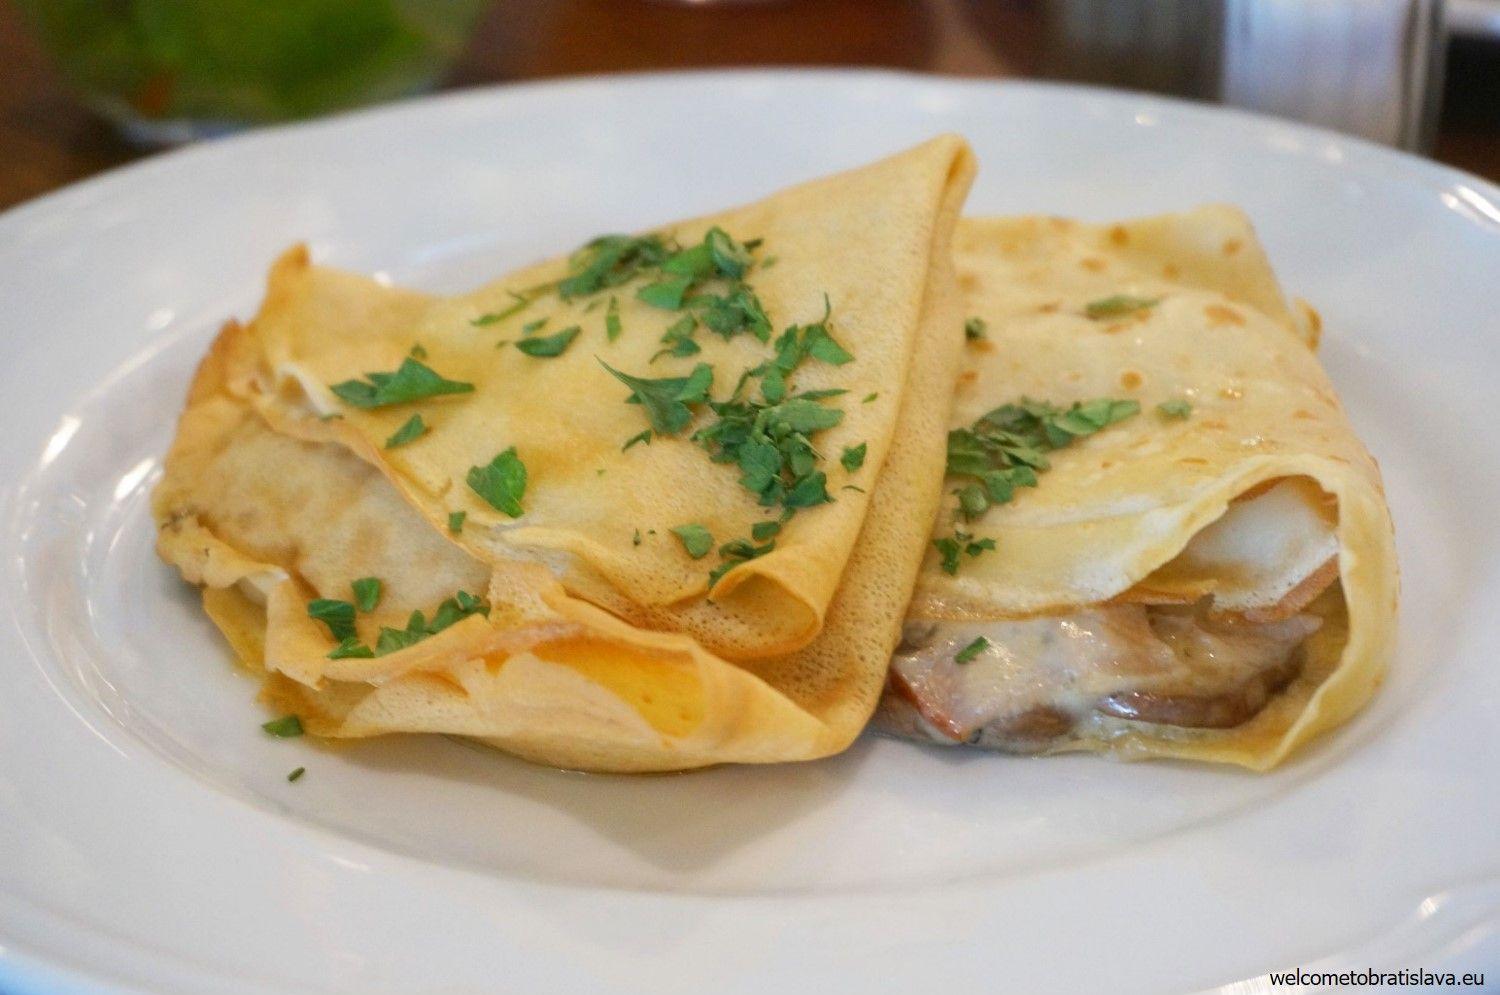 Pancakes with cheese and mushrooms